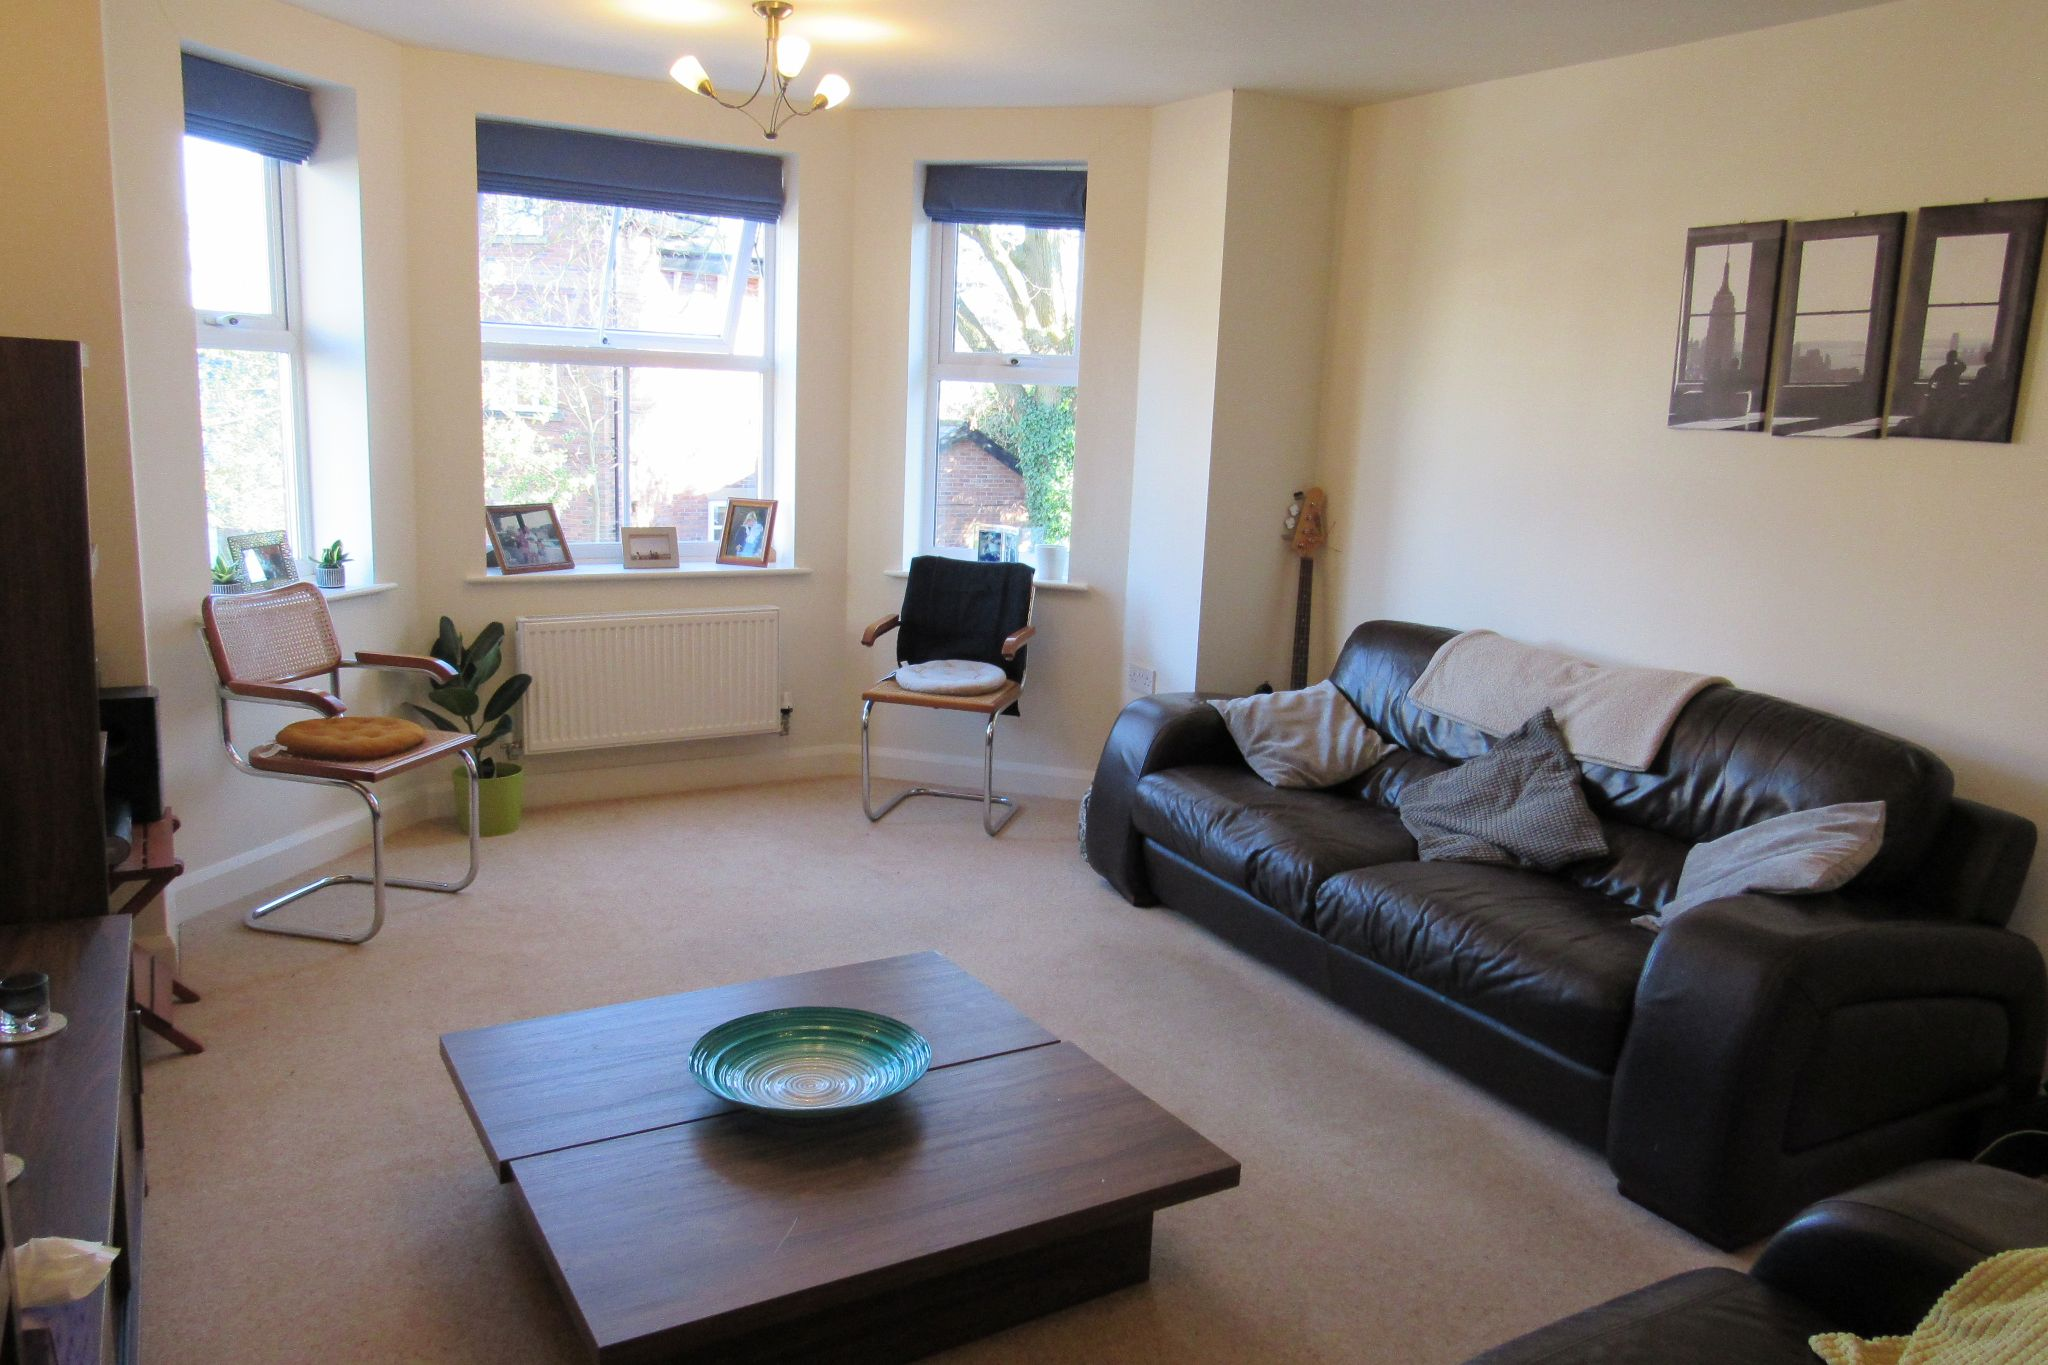 3 bedroom apartment flat/apartment SSTC in Sale - Photograph 16.